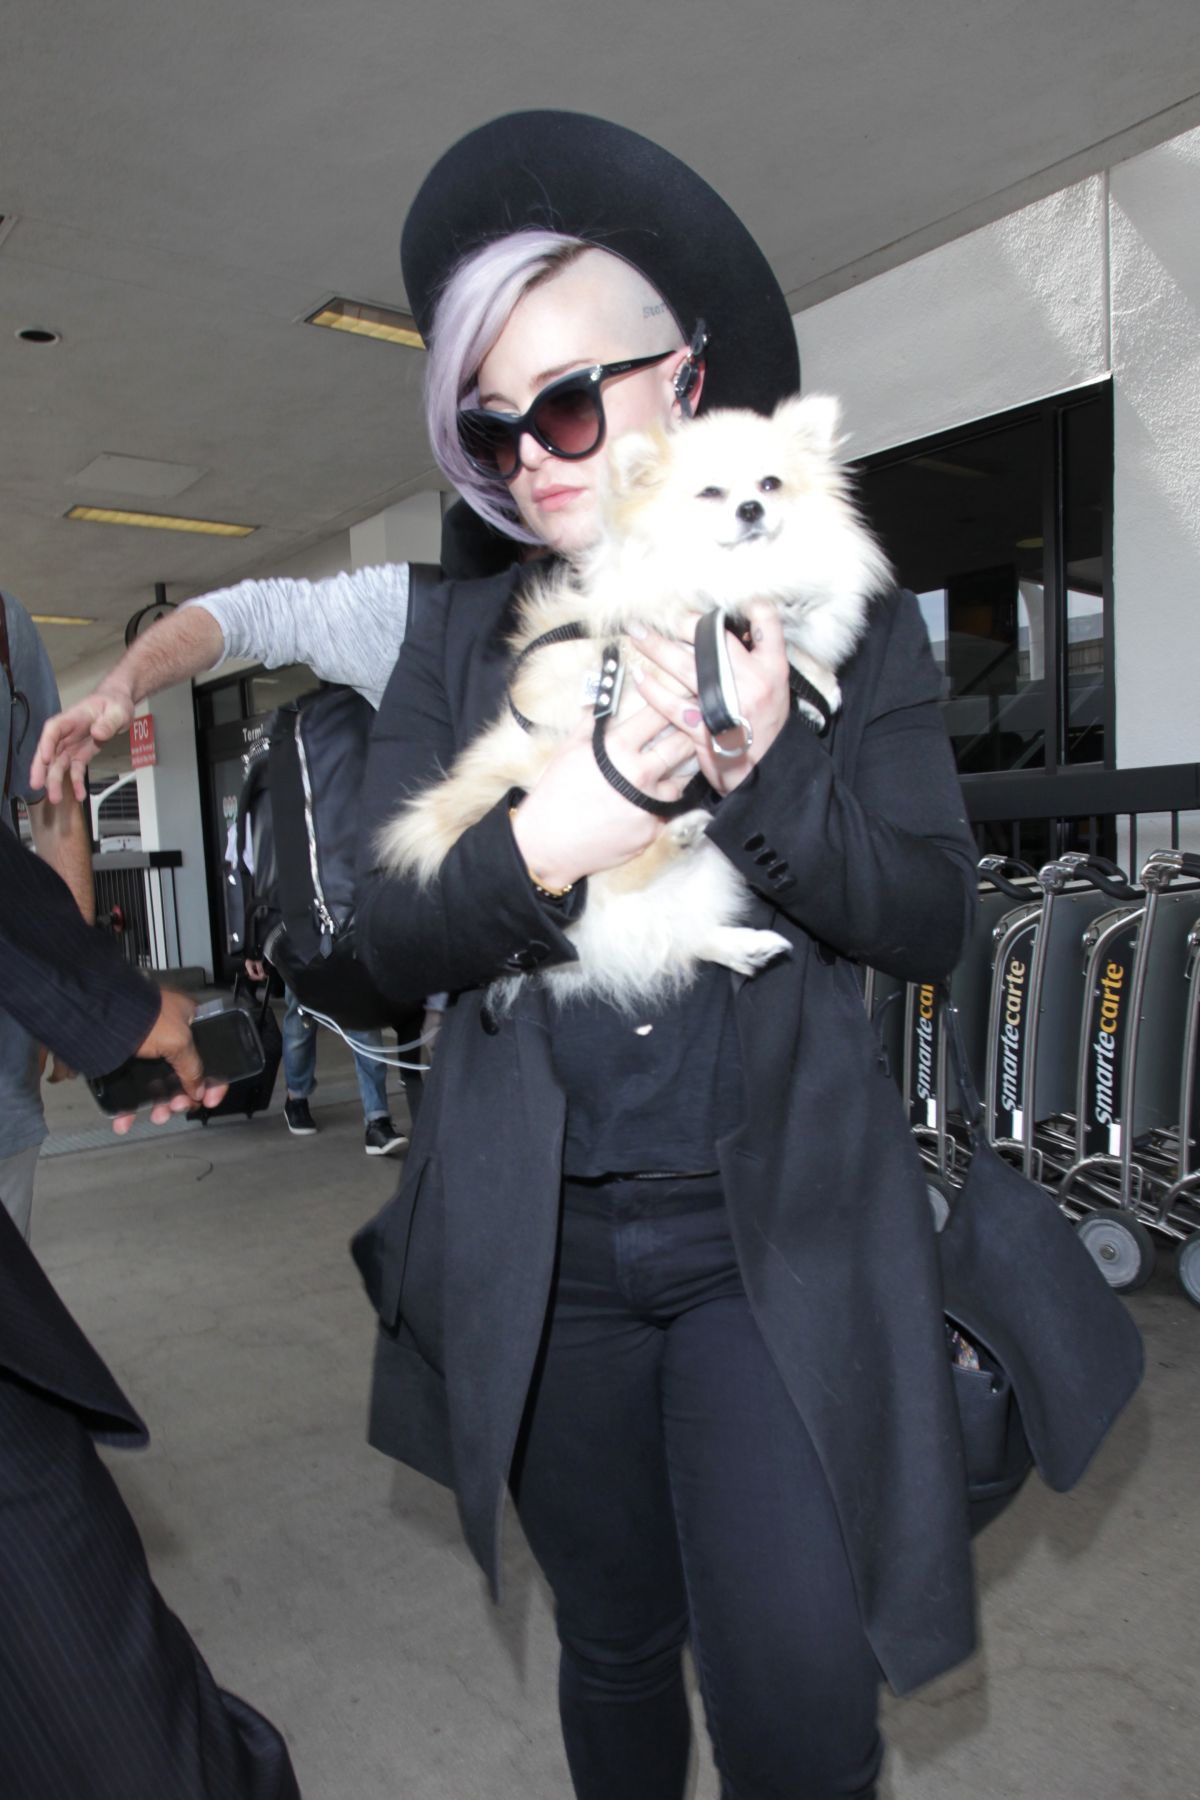 KELLY OSBOURNE at LAX Airport in Los Angeles 06/10/2016